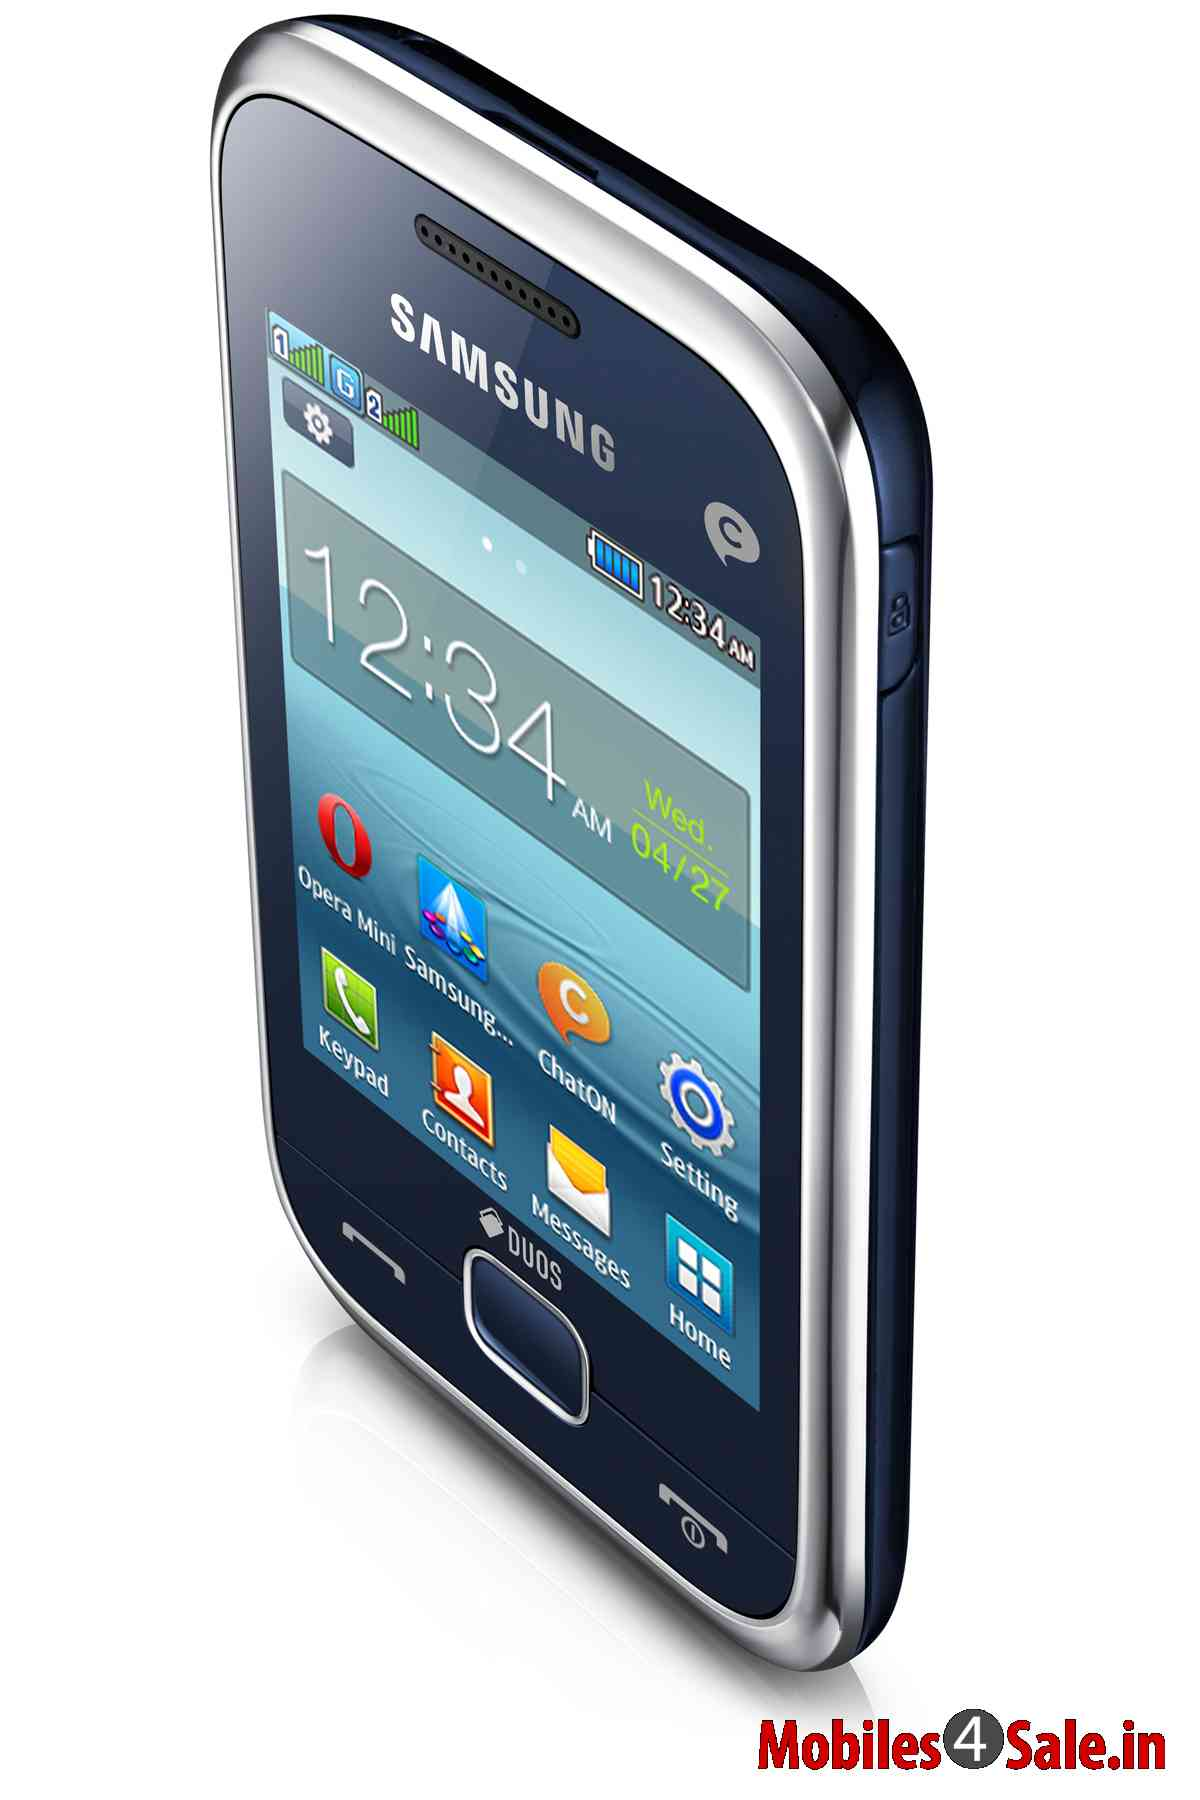 app fre for samsung rex 60 duos gt c3312 software update your www